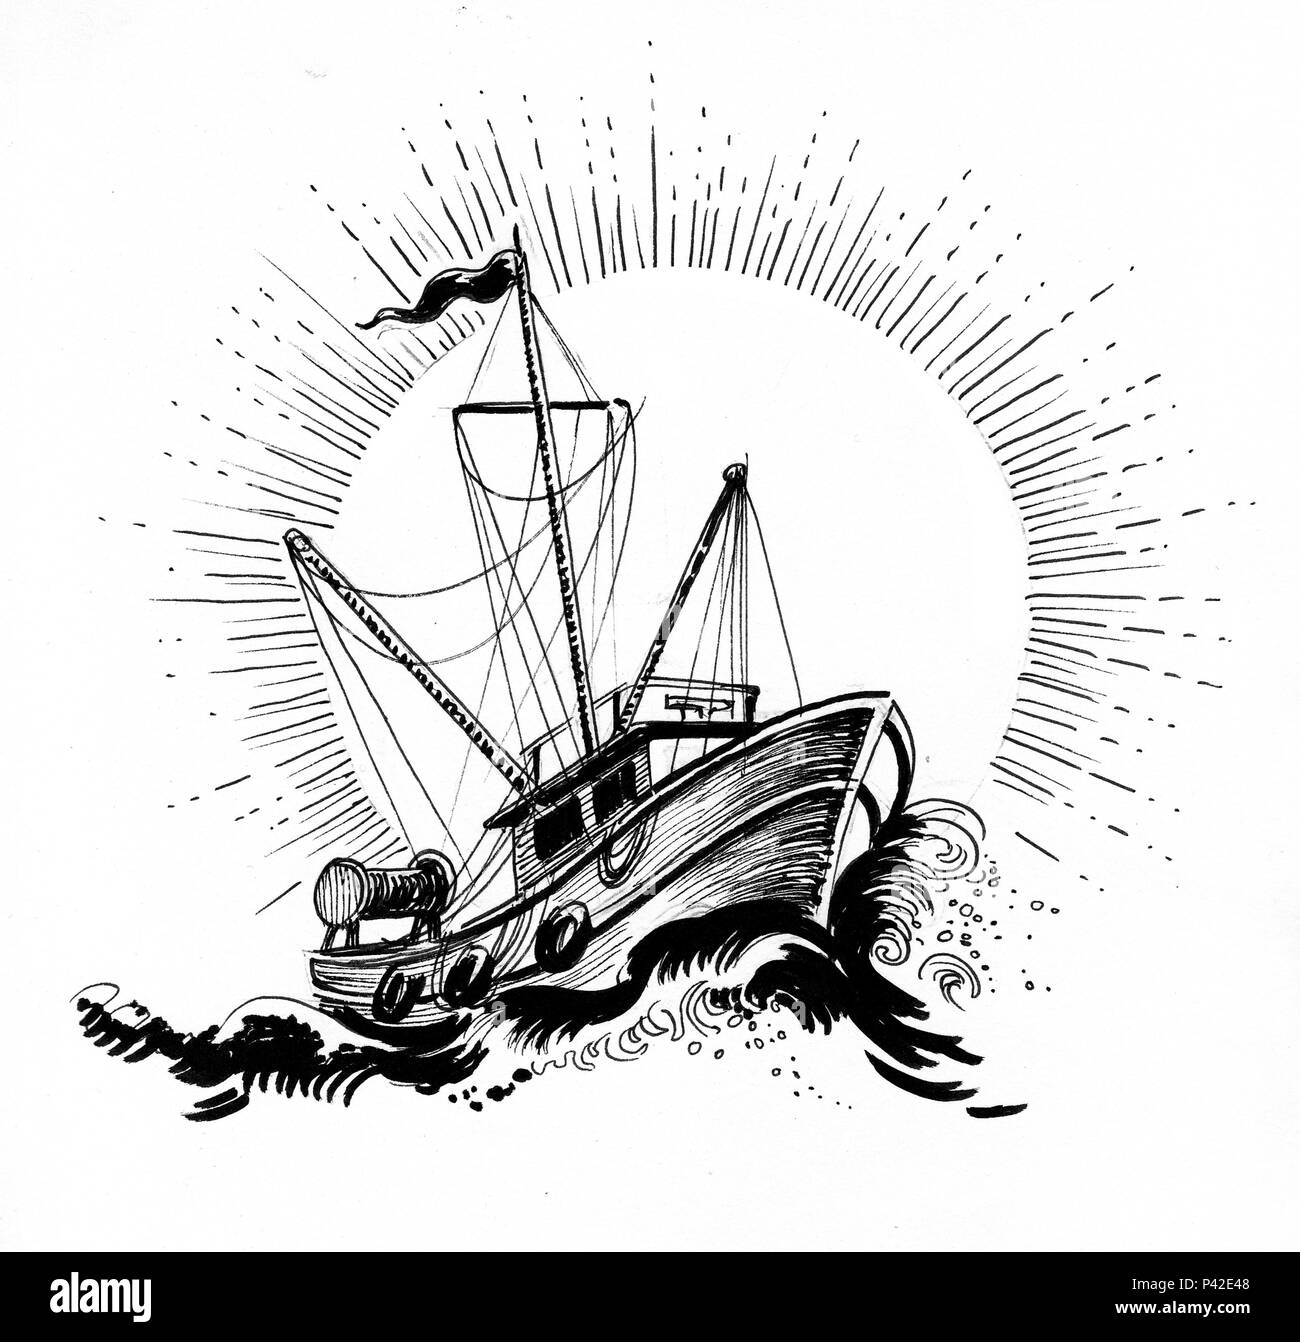 Boat Drawing Photos Boat Drawing Images Alamy